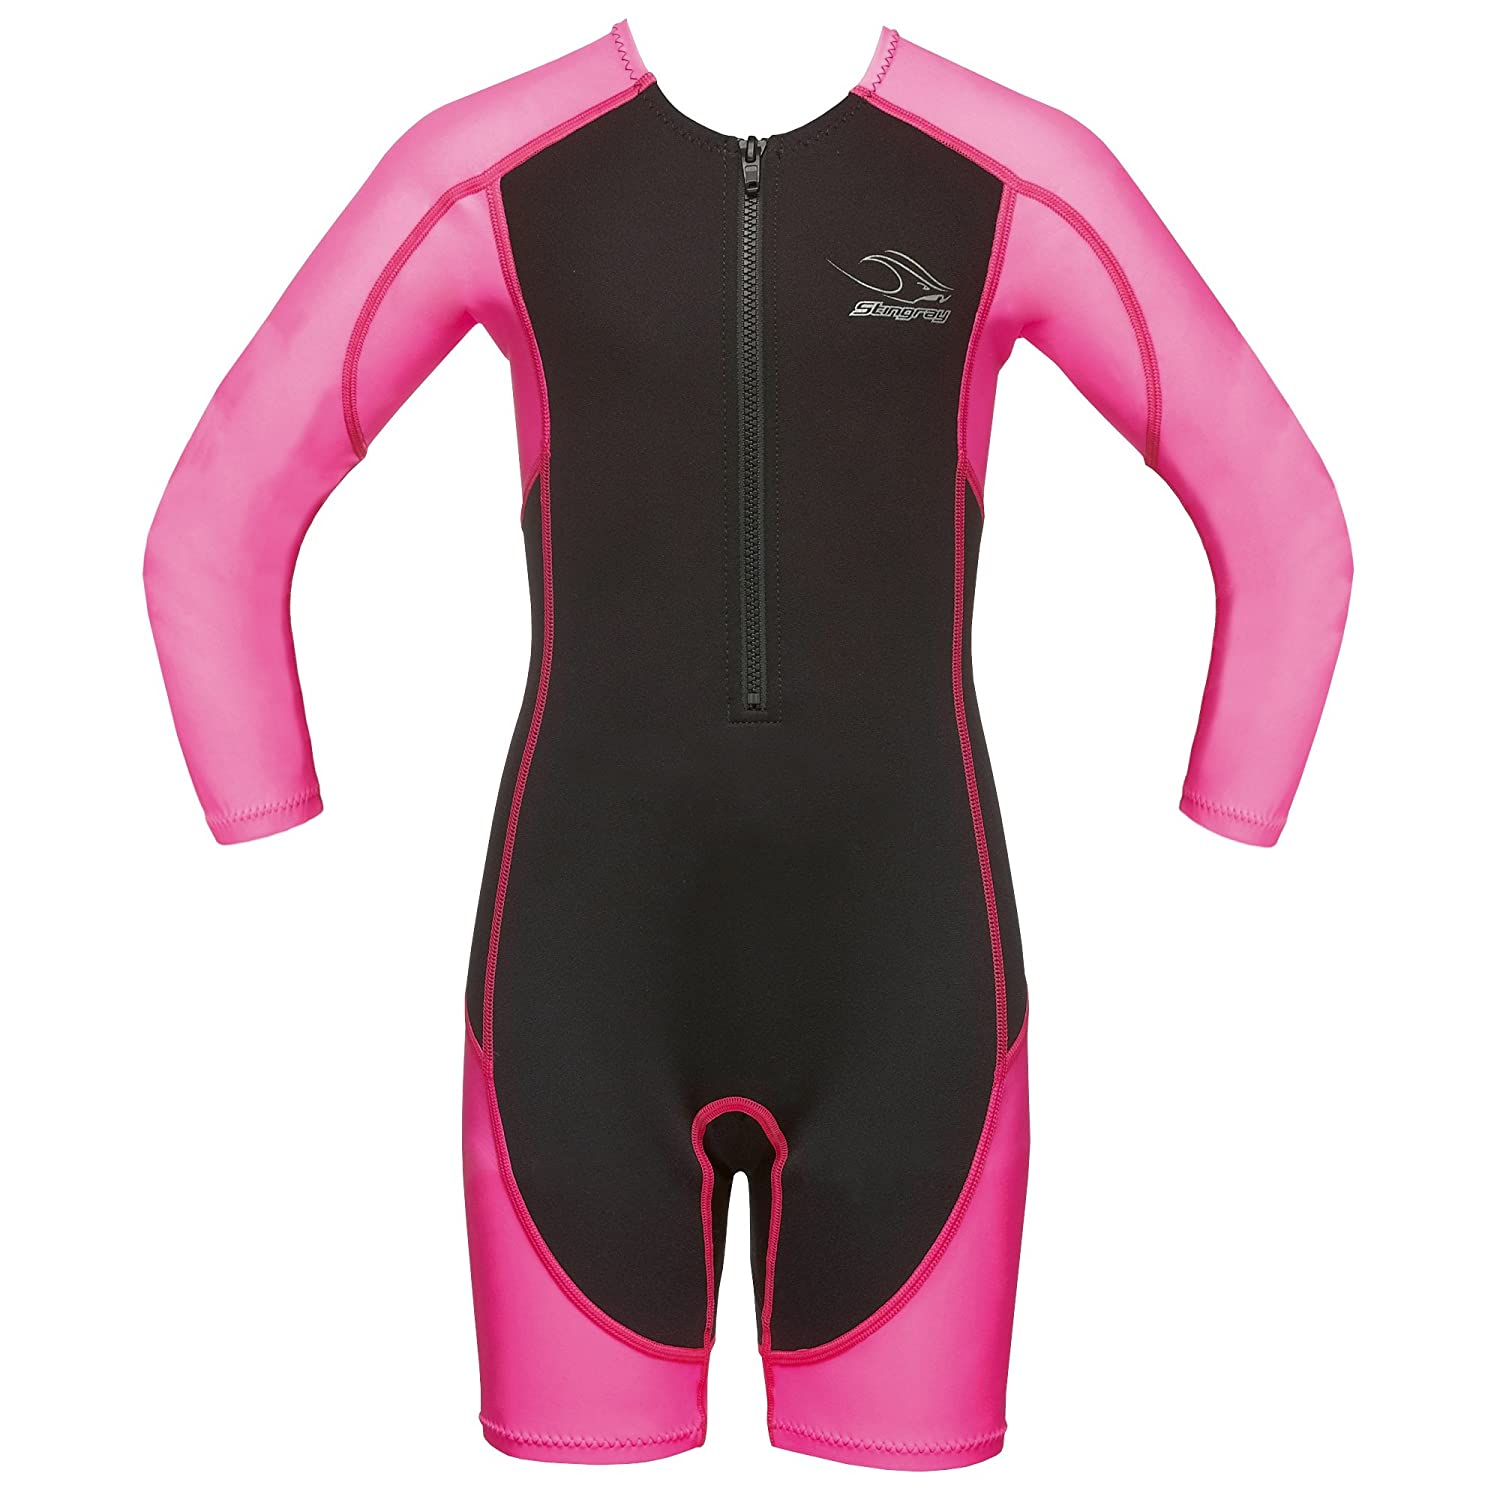 Aqua Sphere Childrens Boys/Girls Stingray Shorty Long Sleeve Wetsuit